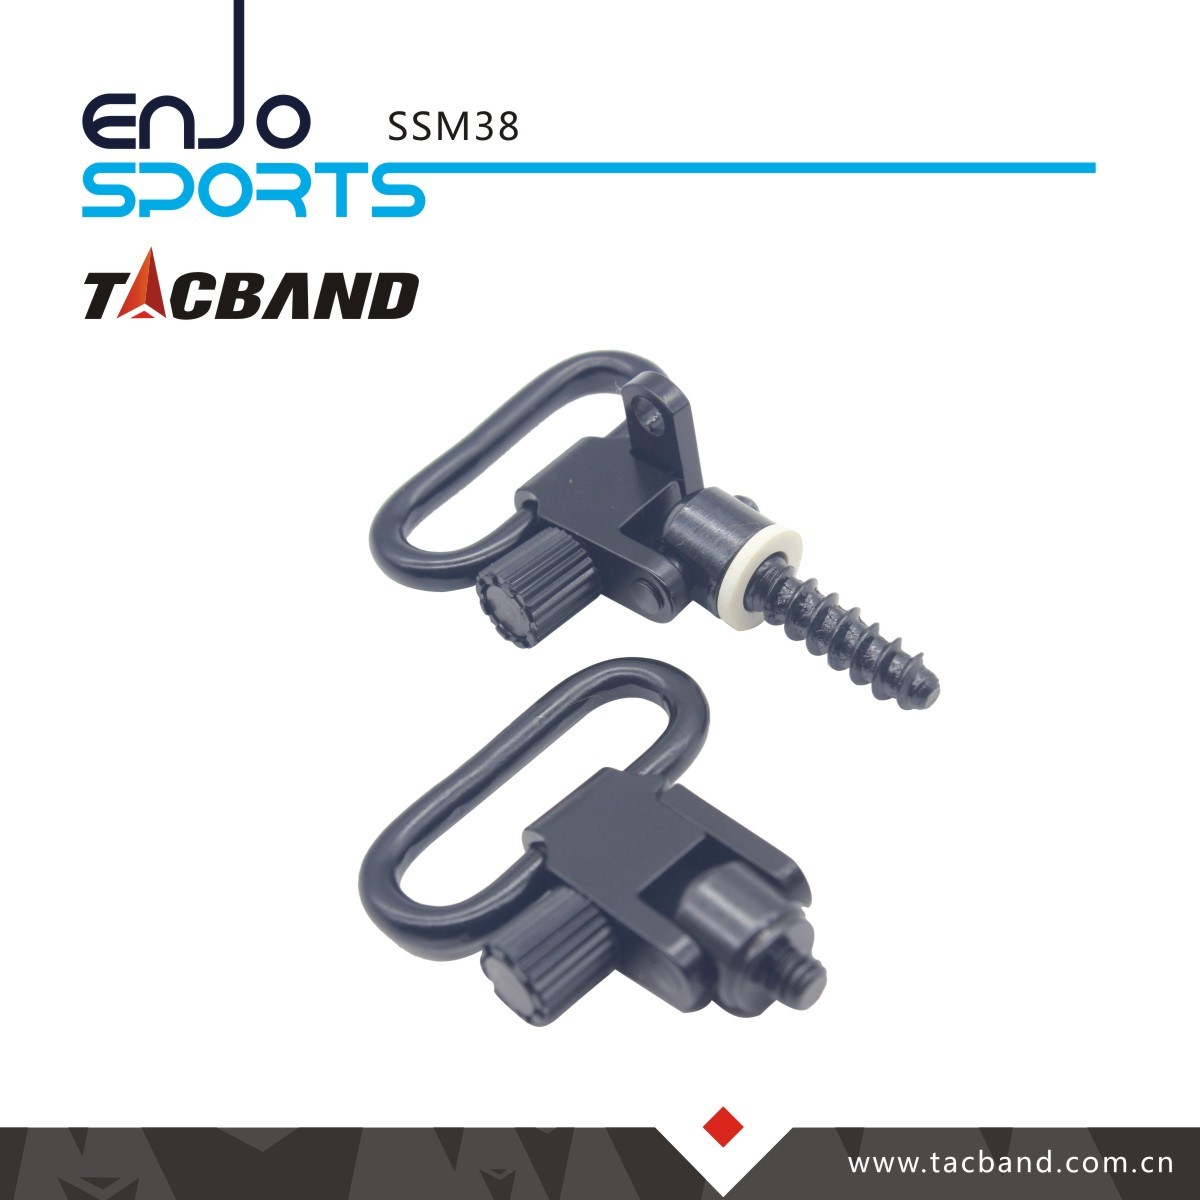 Qd Sling Swivel - Fore End Band Style - Lever Action